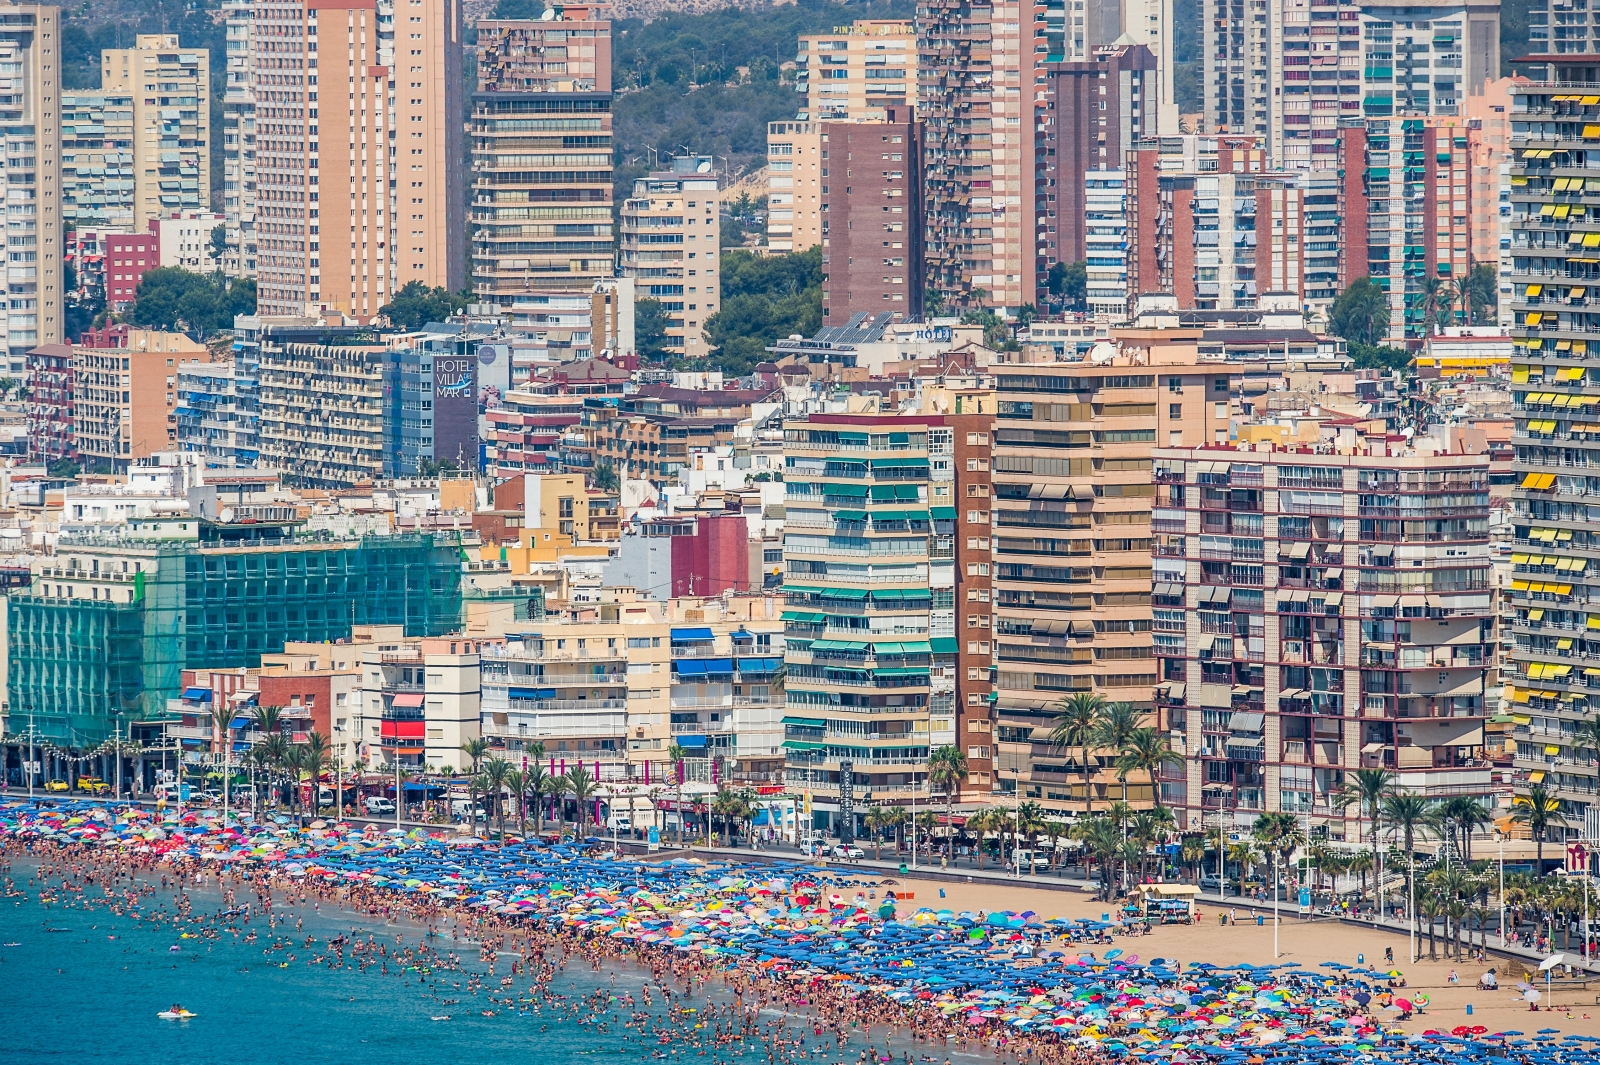 Spain British Woman Arrested In Benidorm For Abandoning 9